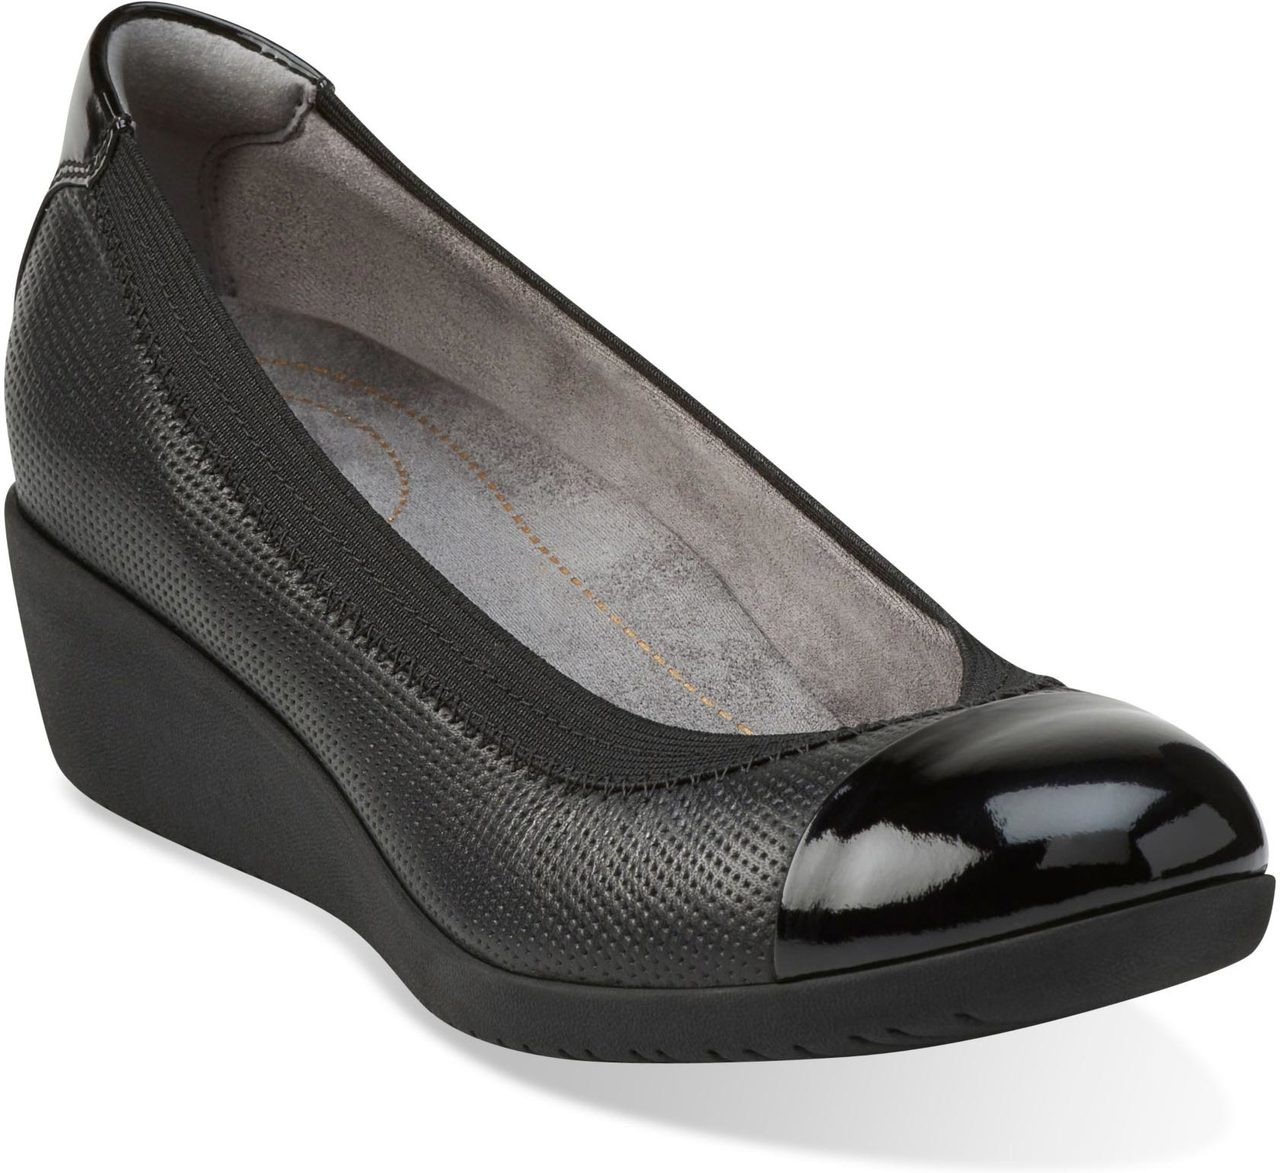 Dansko Pumps Clearance